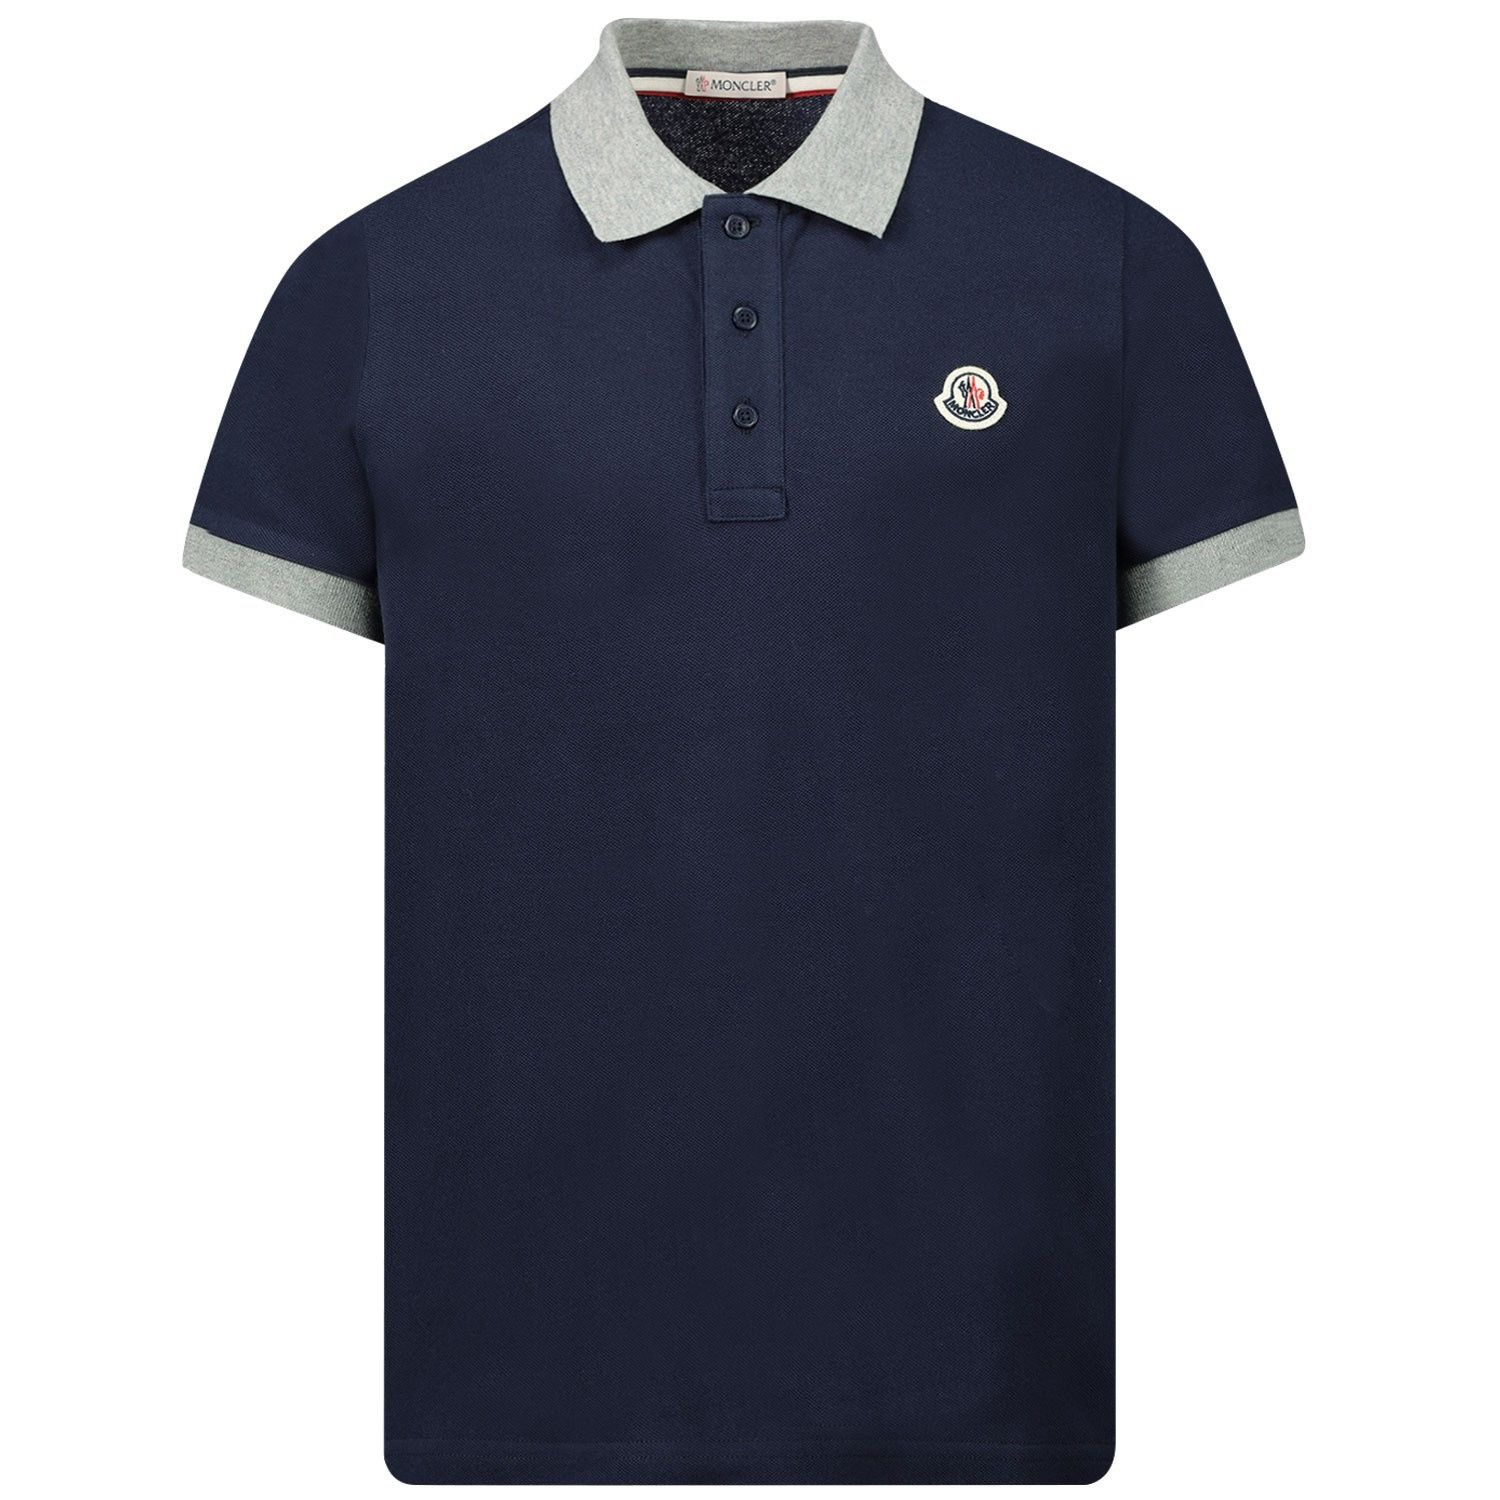 Picture of Moncler 8A70120 kids polo shirt navy